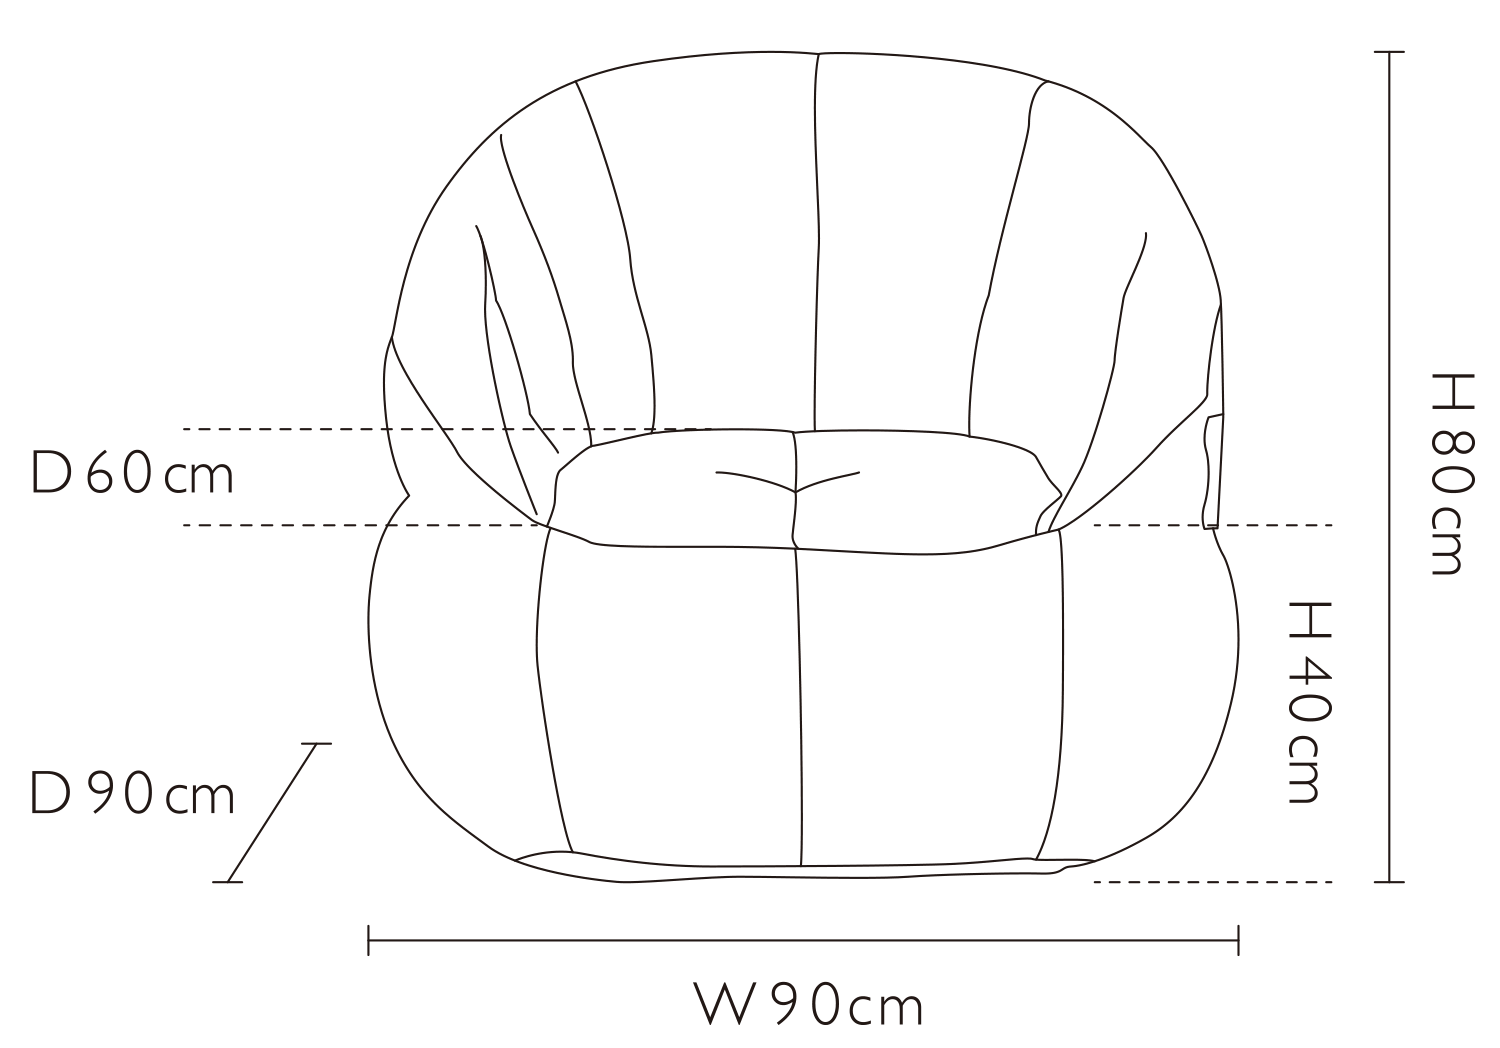 Butterfly dimensions guide